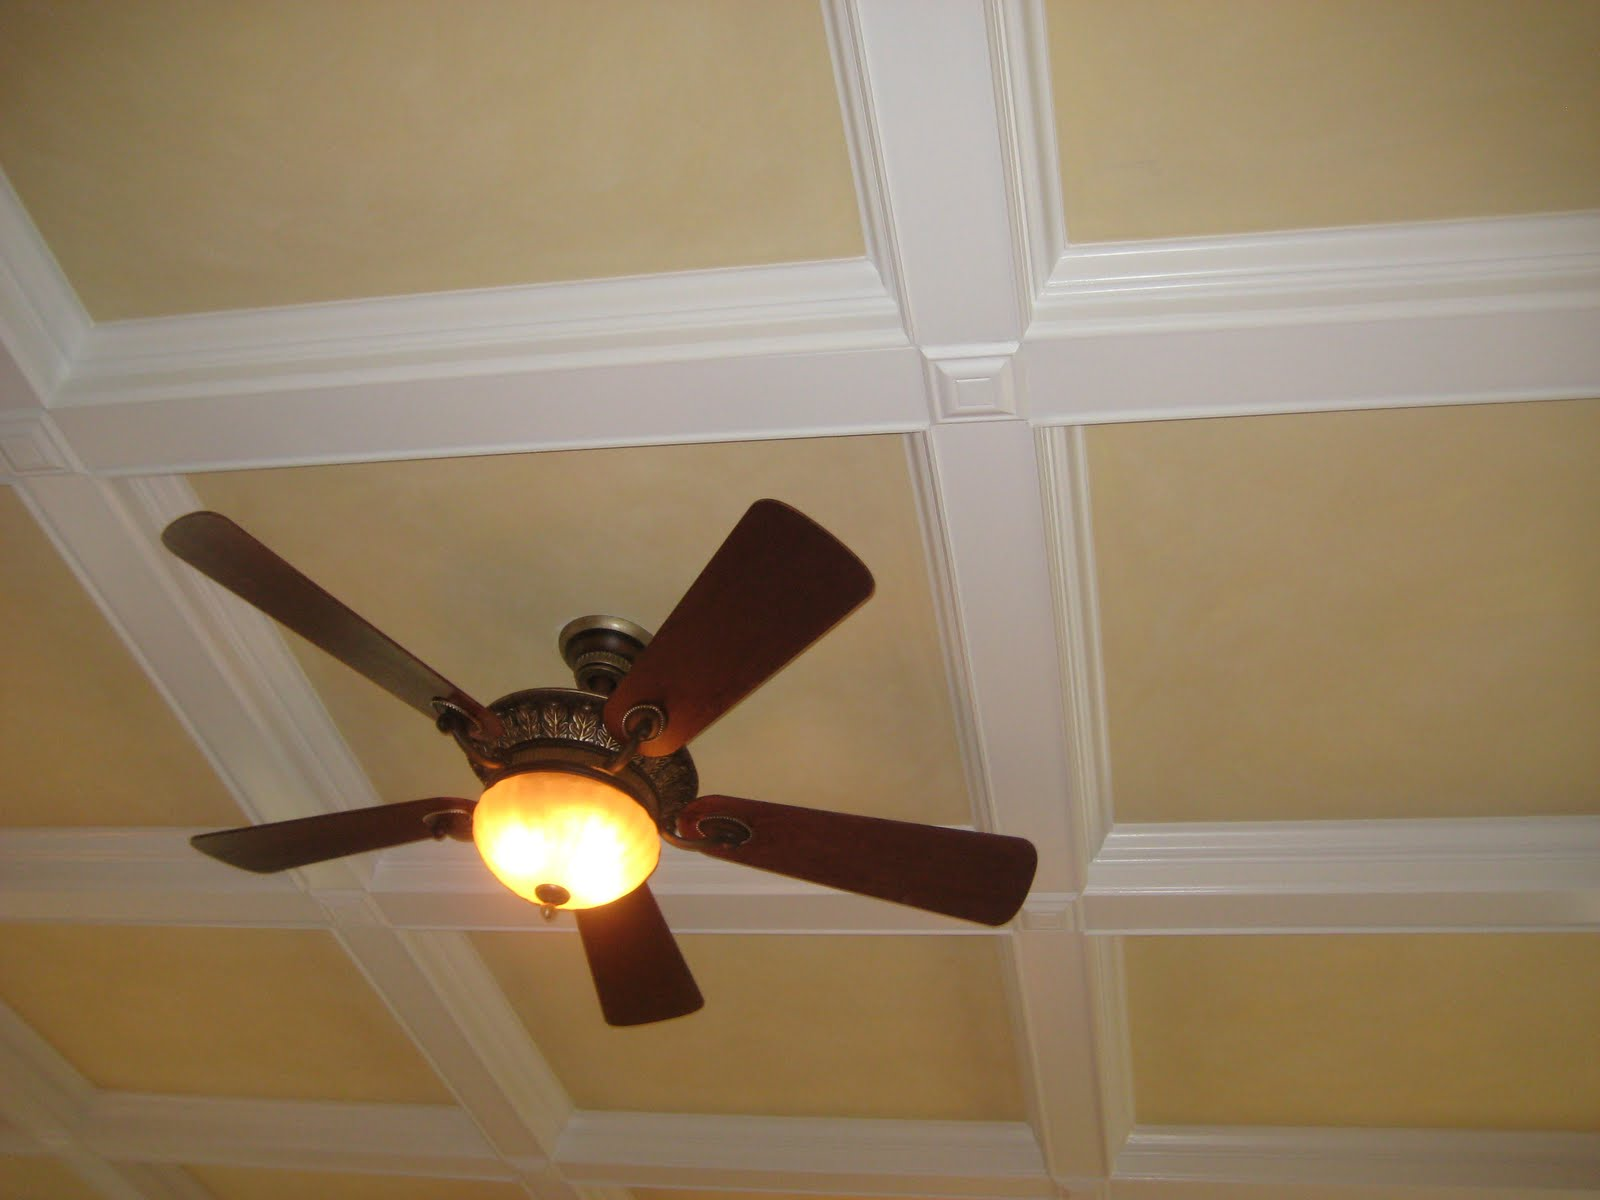 Pic new posts wallpaper on a ceiling - Wallpaper on ceiling ideas ...